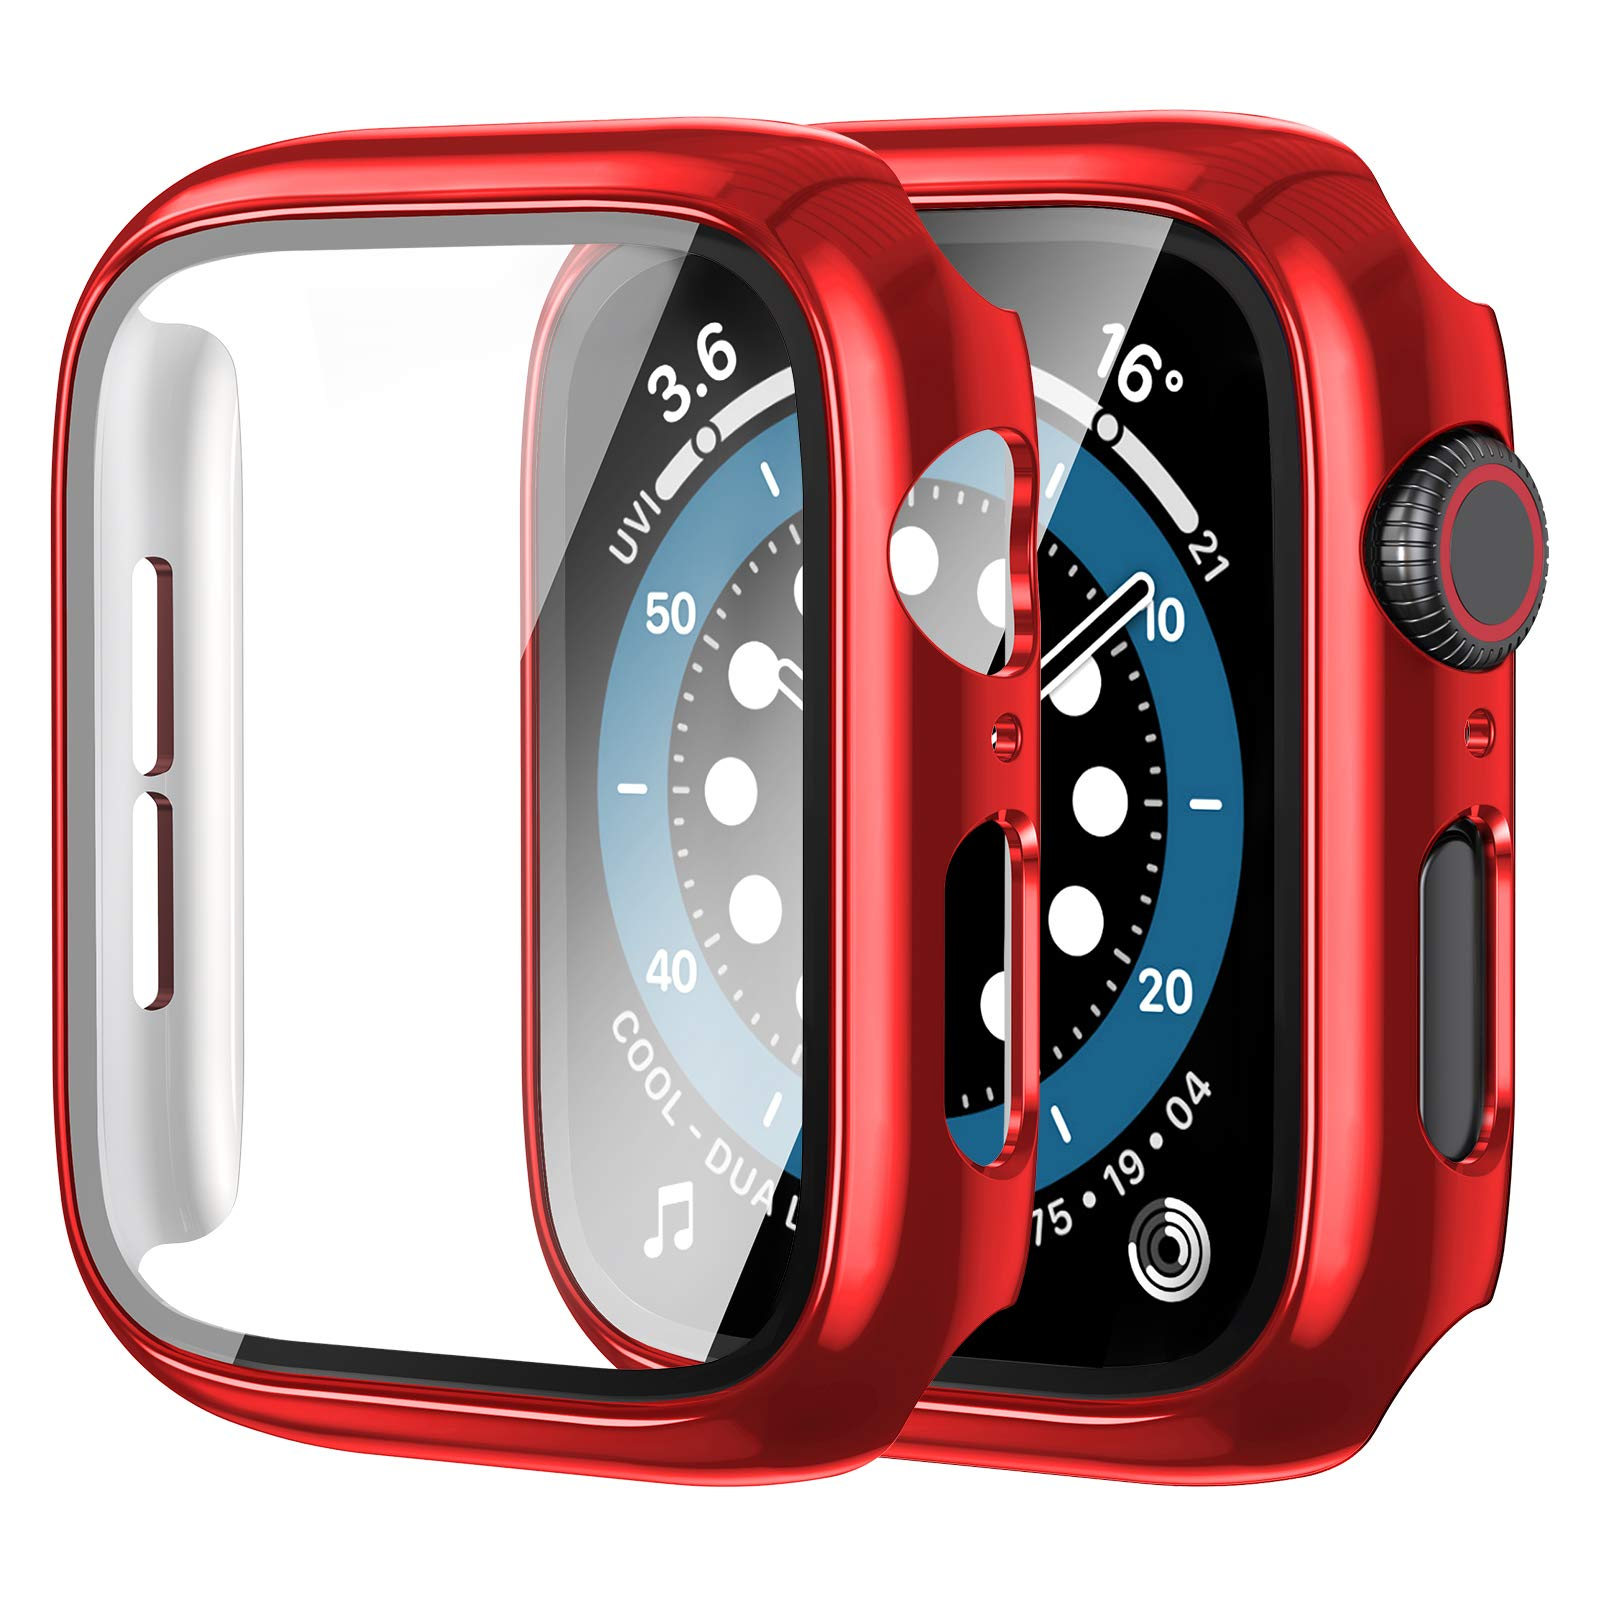 [2 Pack] Anwaut Case with Screen Protector for Apple Watch Series 3/2/1 42mm,Full Defense Coverage with Tempered Glass Cover Accessories for iWatch 42mm Women Men Red